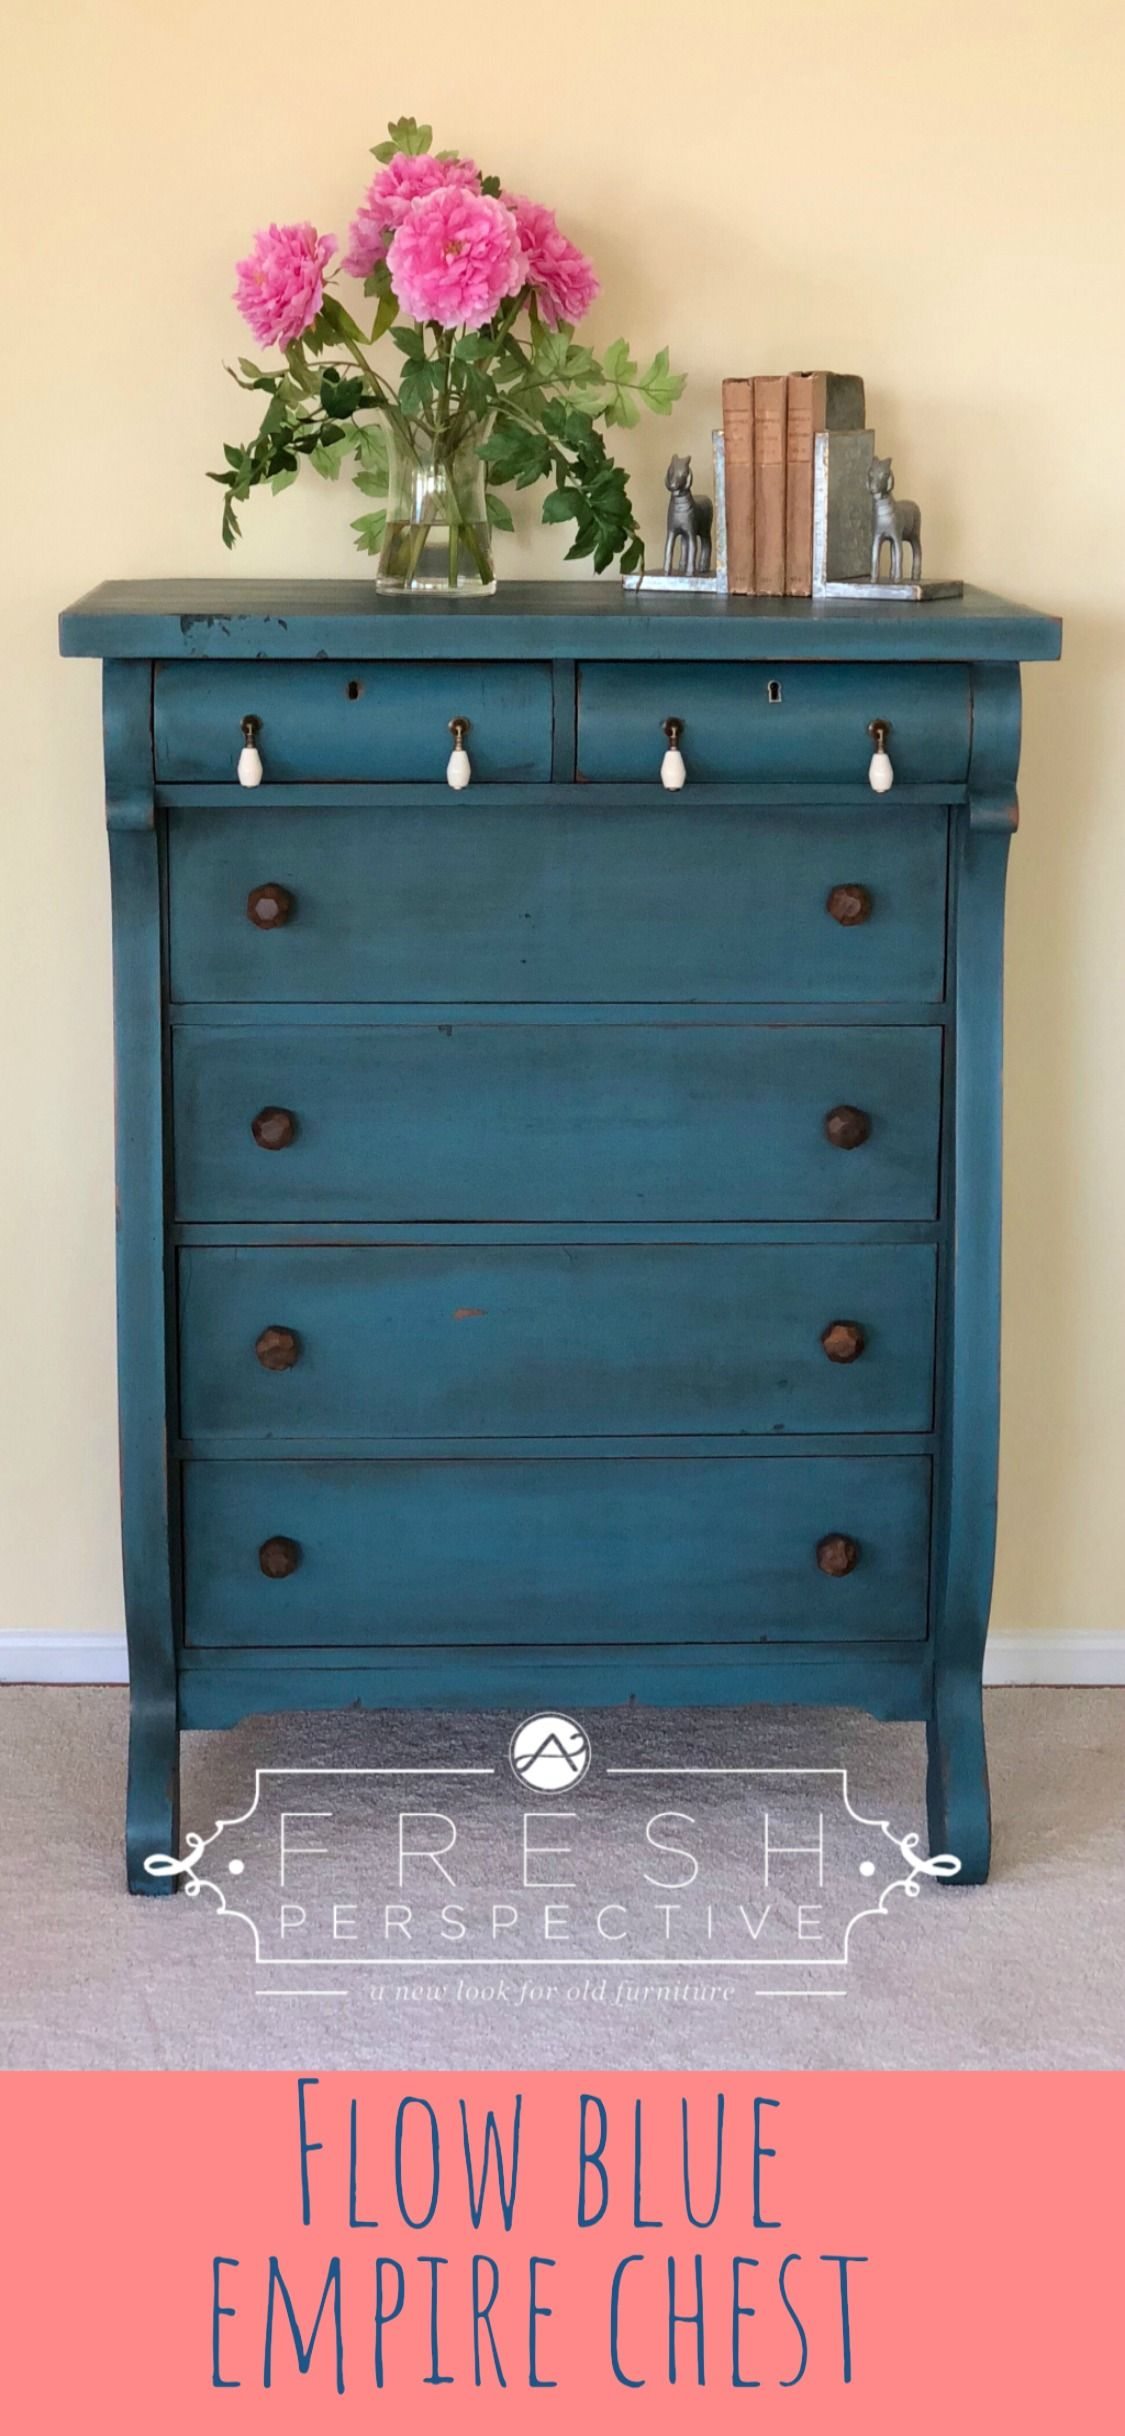 Antique Empire Chest Painted In Miss Mustard Seed Flow Blue Milk Paint